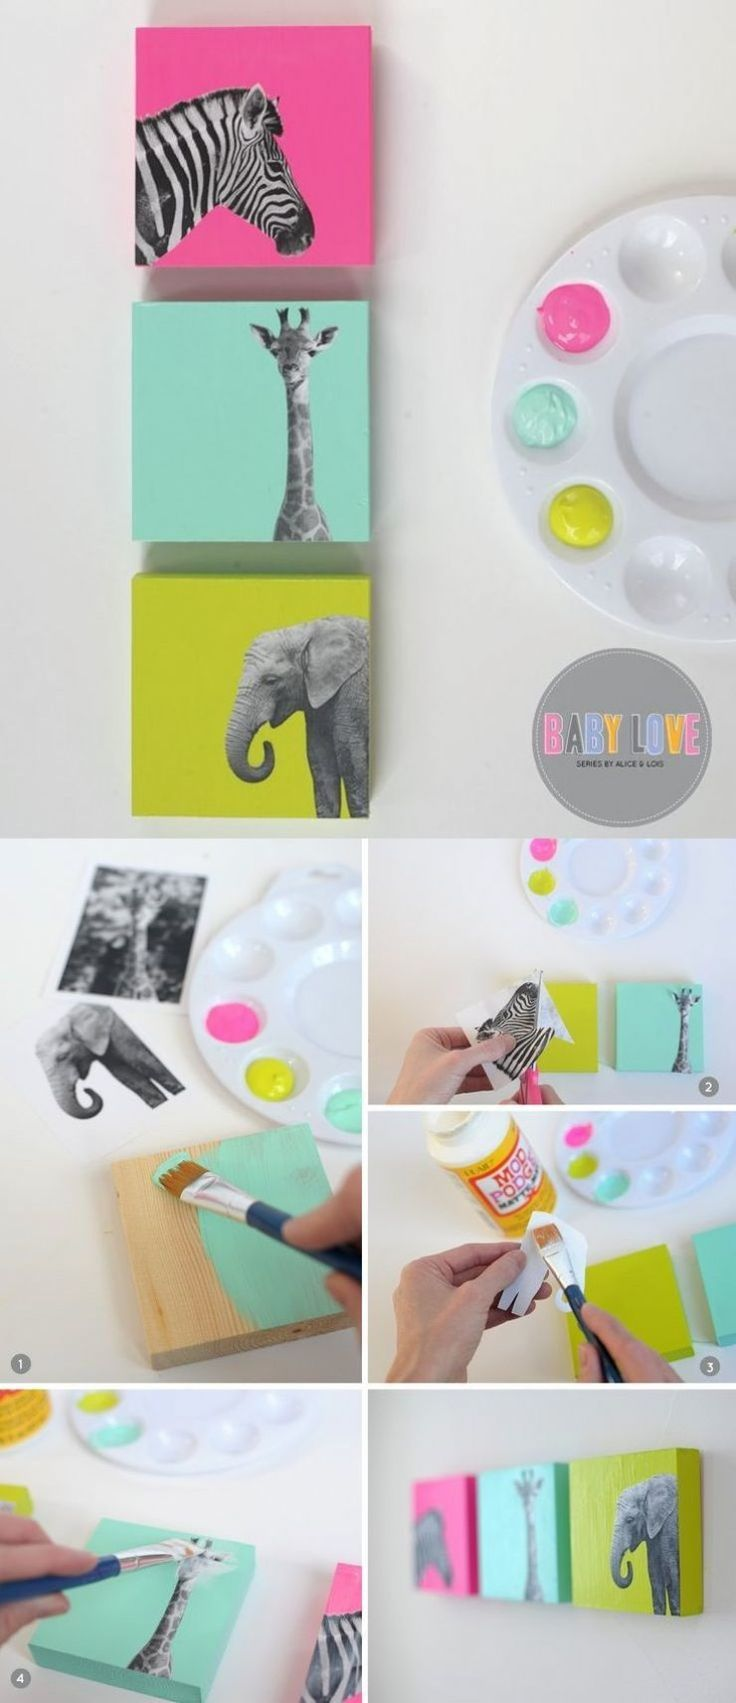 Baby room decorations - Diy Painted Wood Block Nursery Art